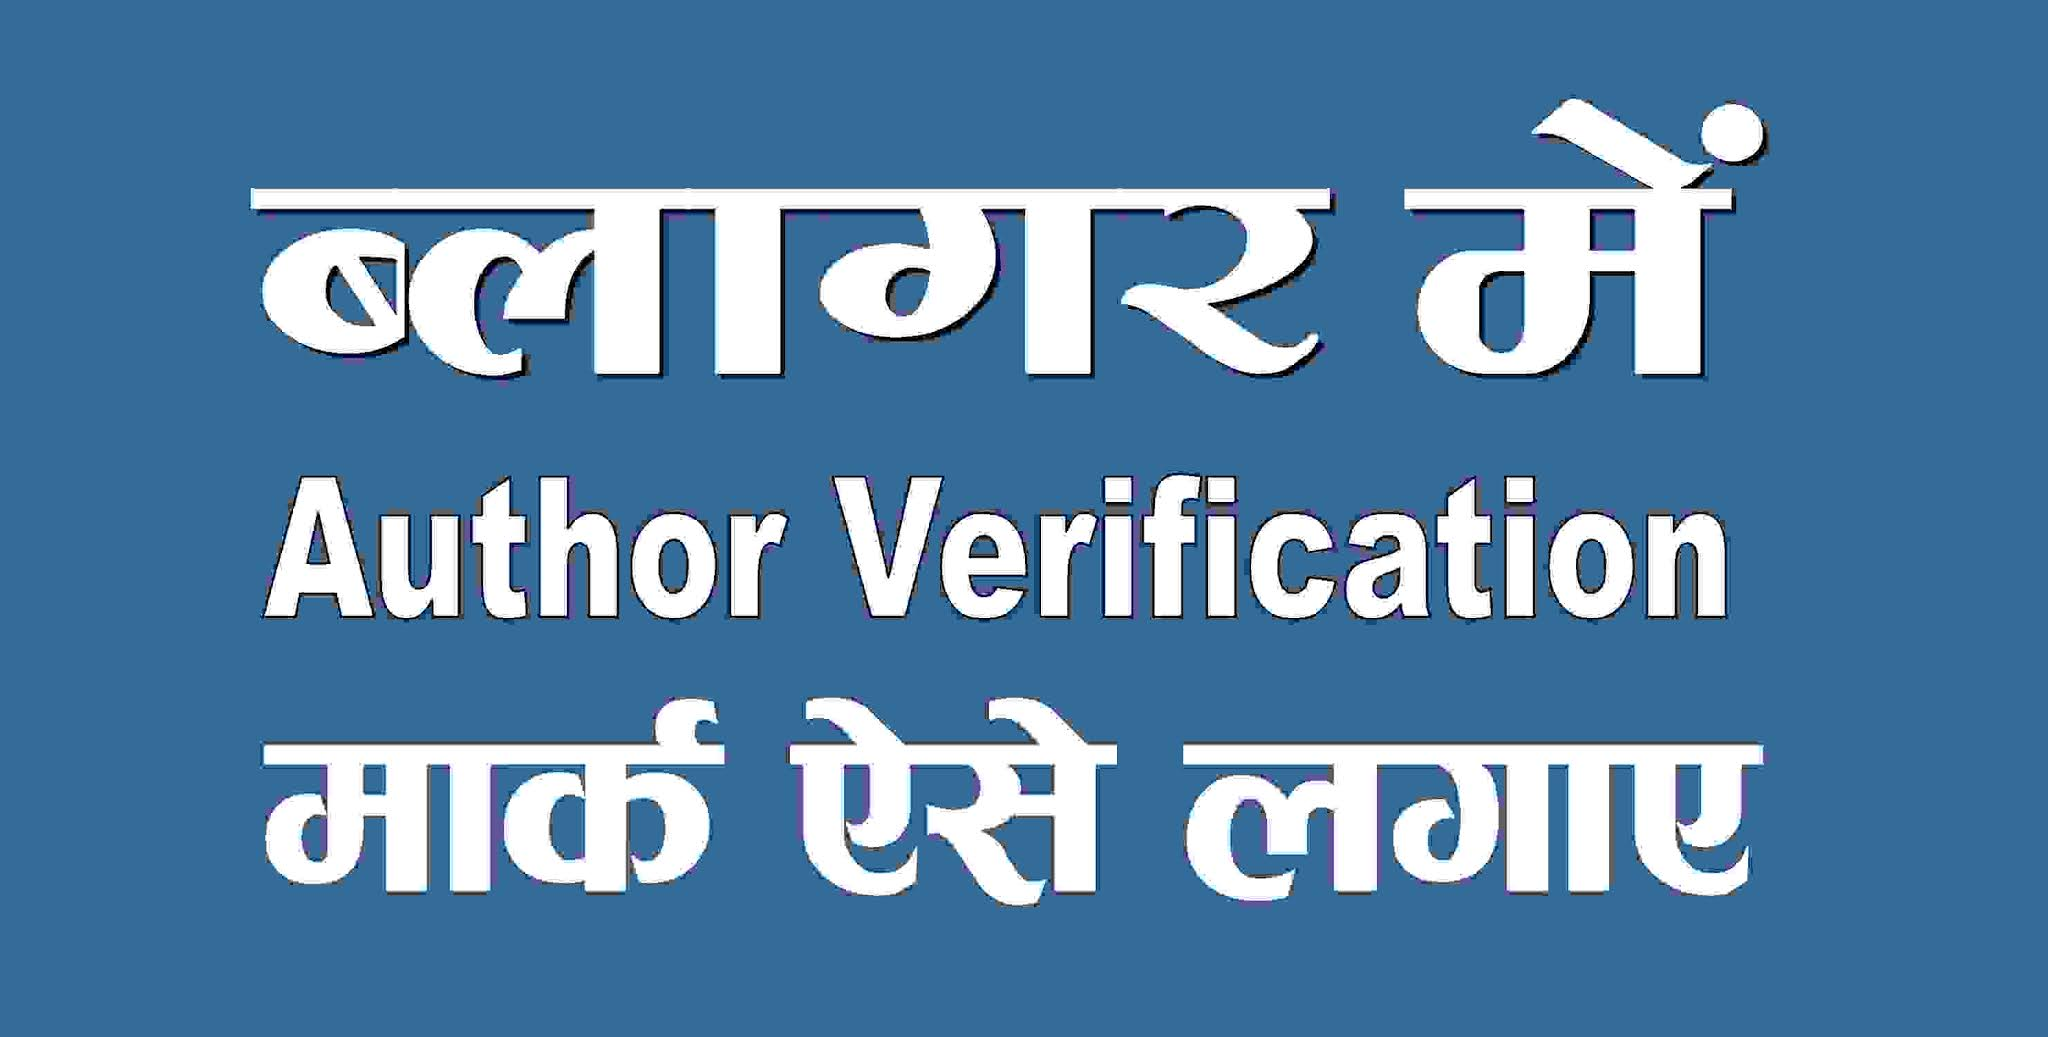 Blogger footer section me author verification mark kaise lagaye  Technicalroad